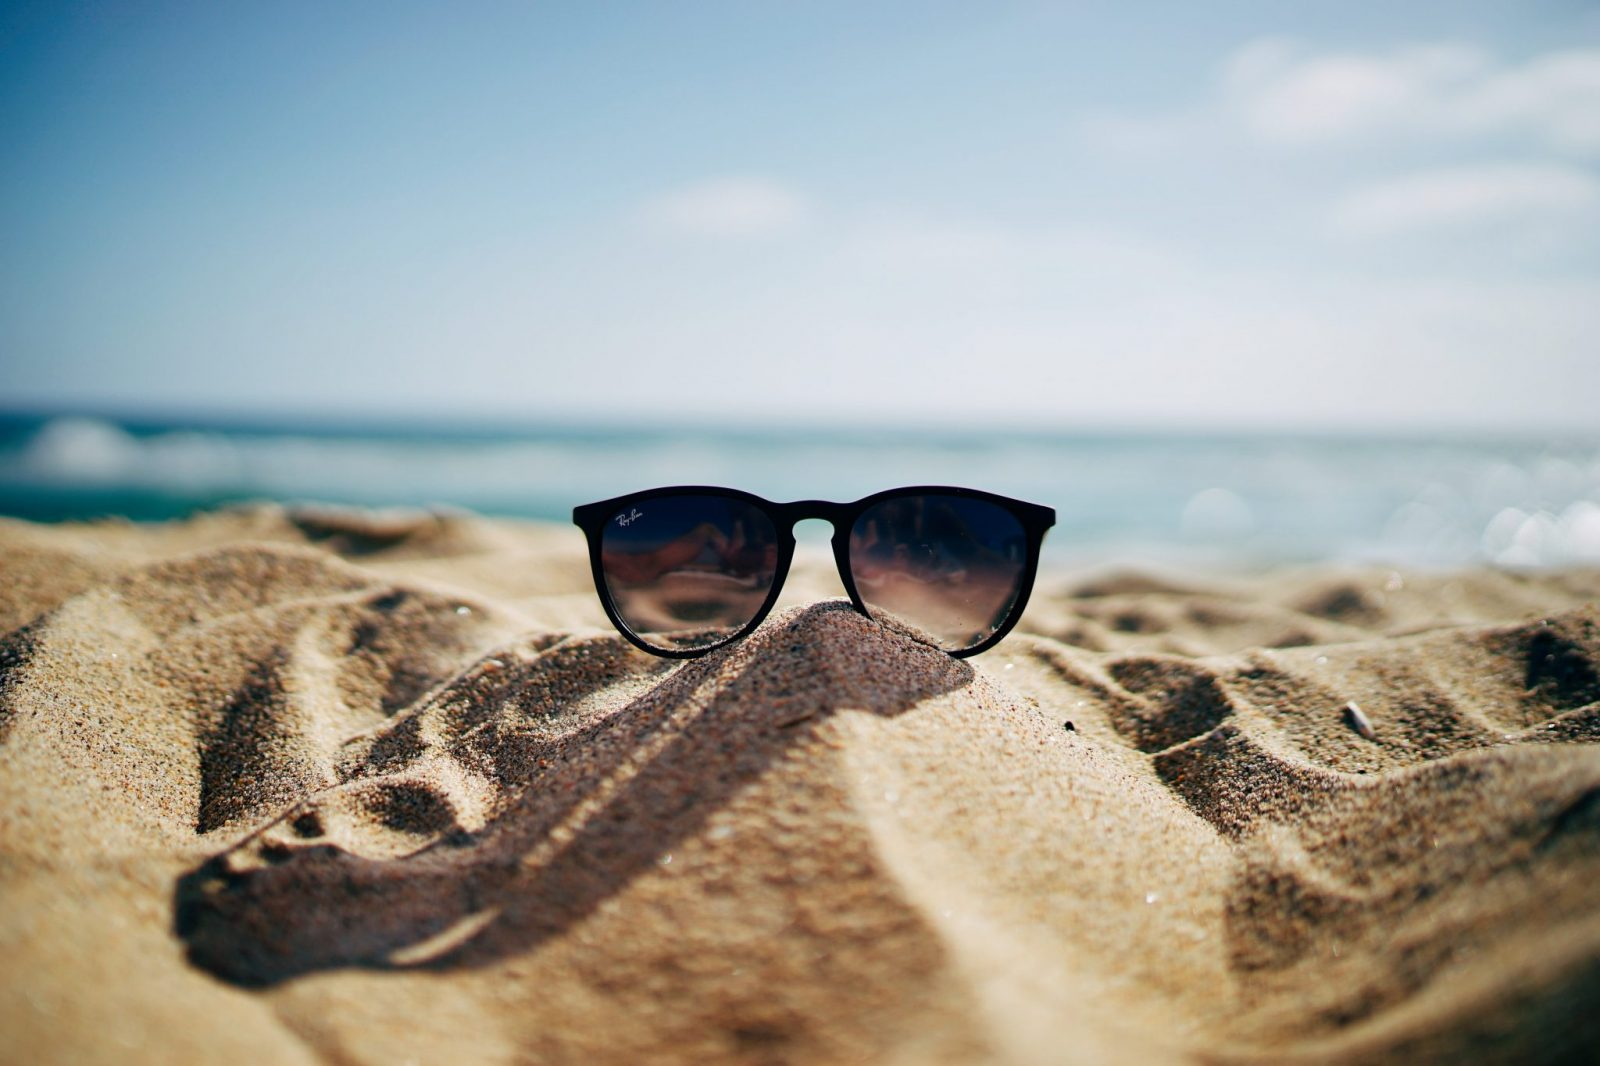 Top 5 Ways to Stay Active on Holiday